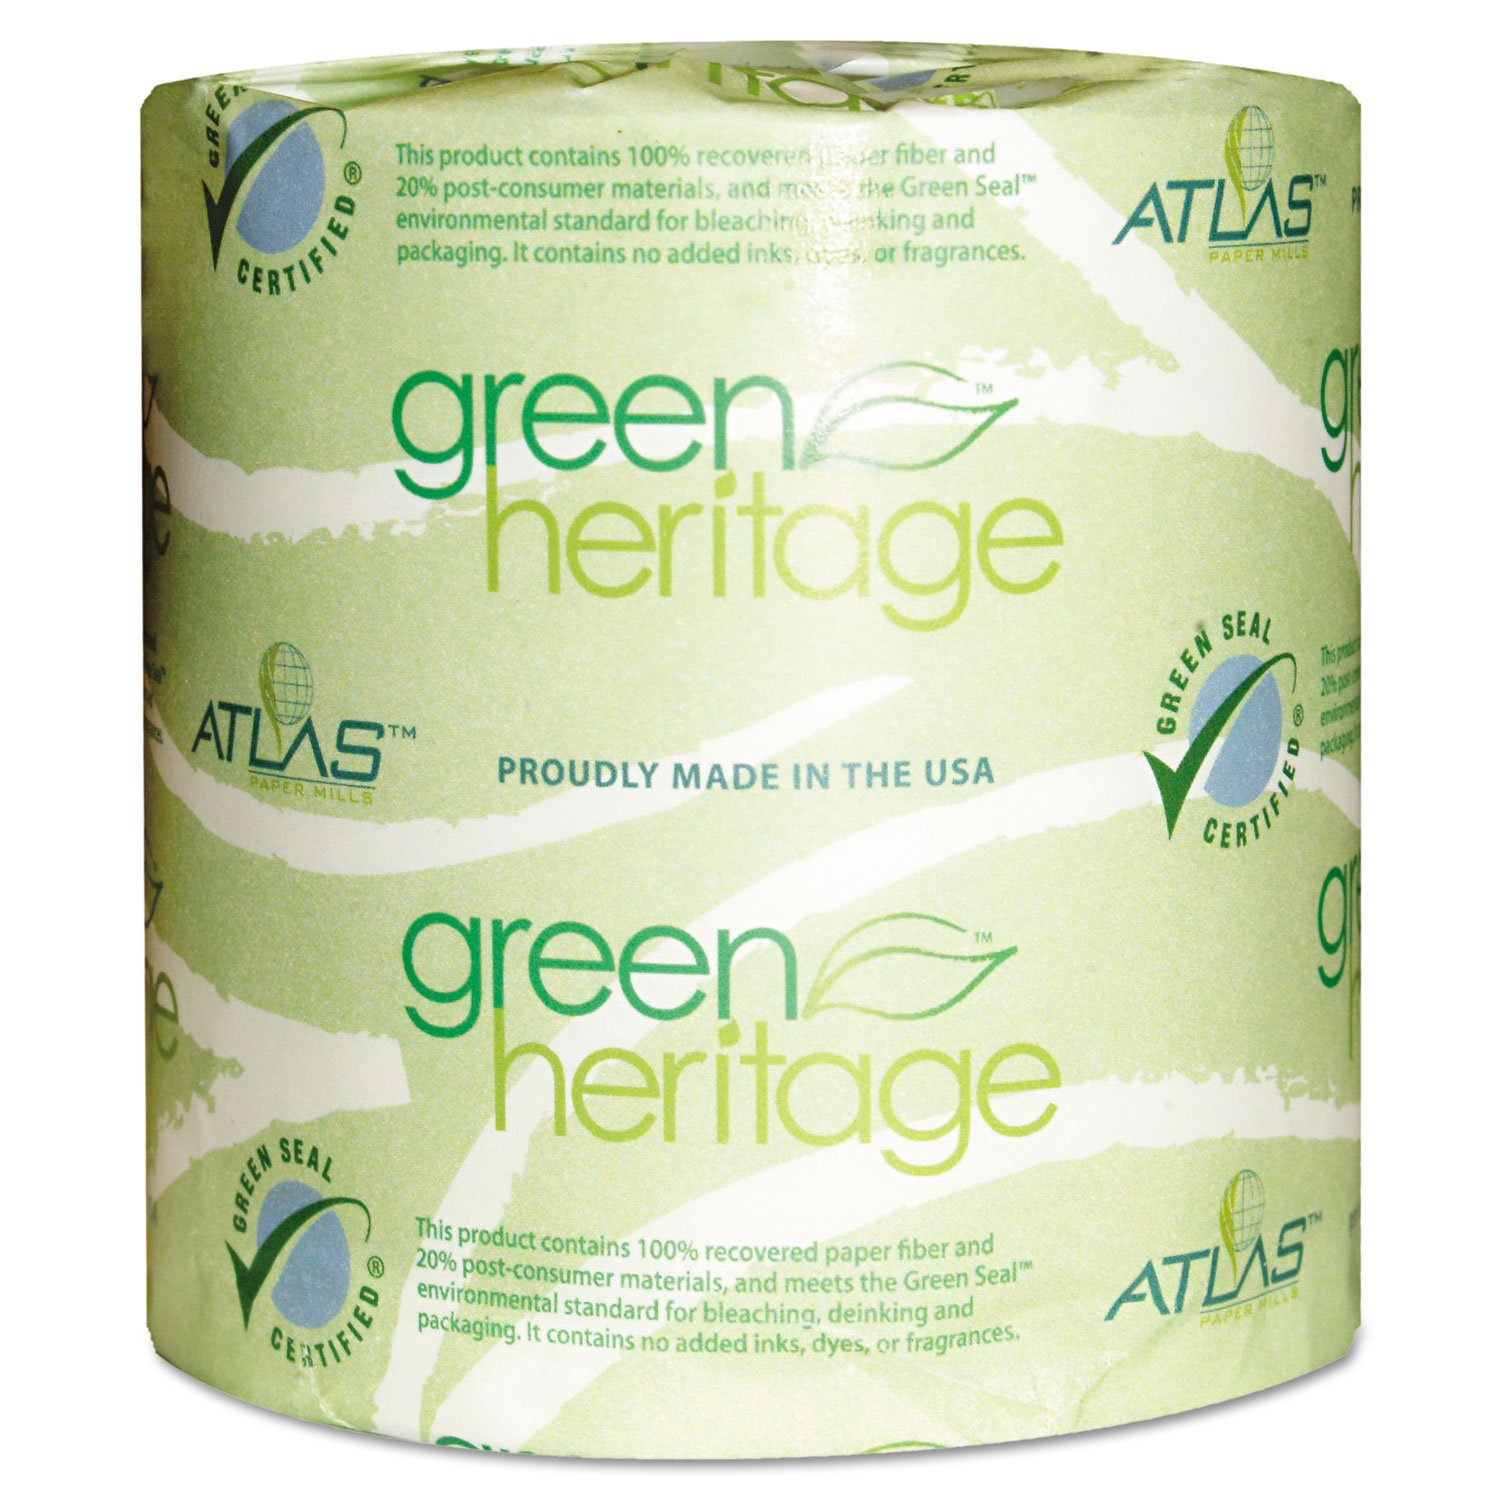 Green Heritage 276 2-Ply Bathroom Tissue, 4.1'' Length x 3.1'' Width, (Case of 96 Rolls, 500 per Roll) by Green Heritage